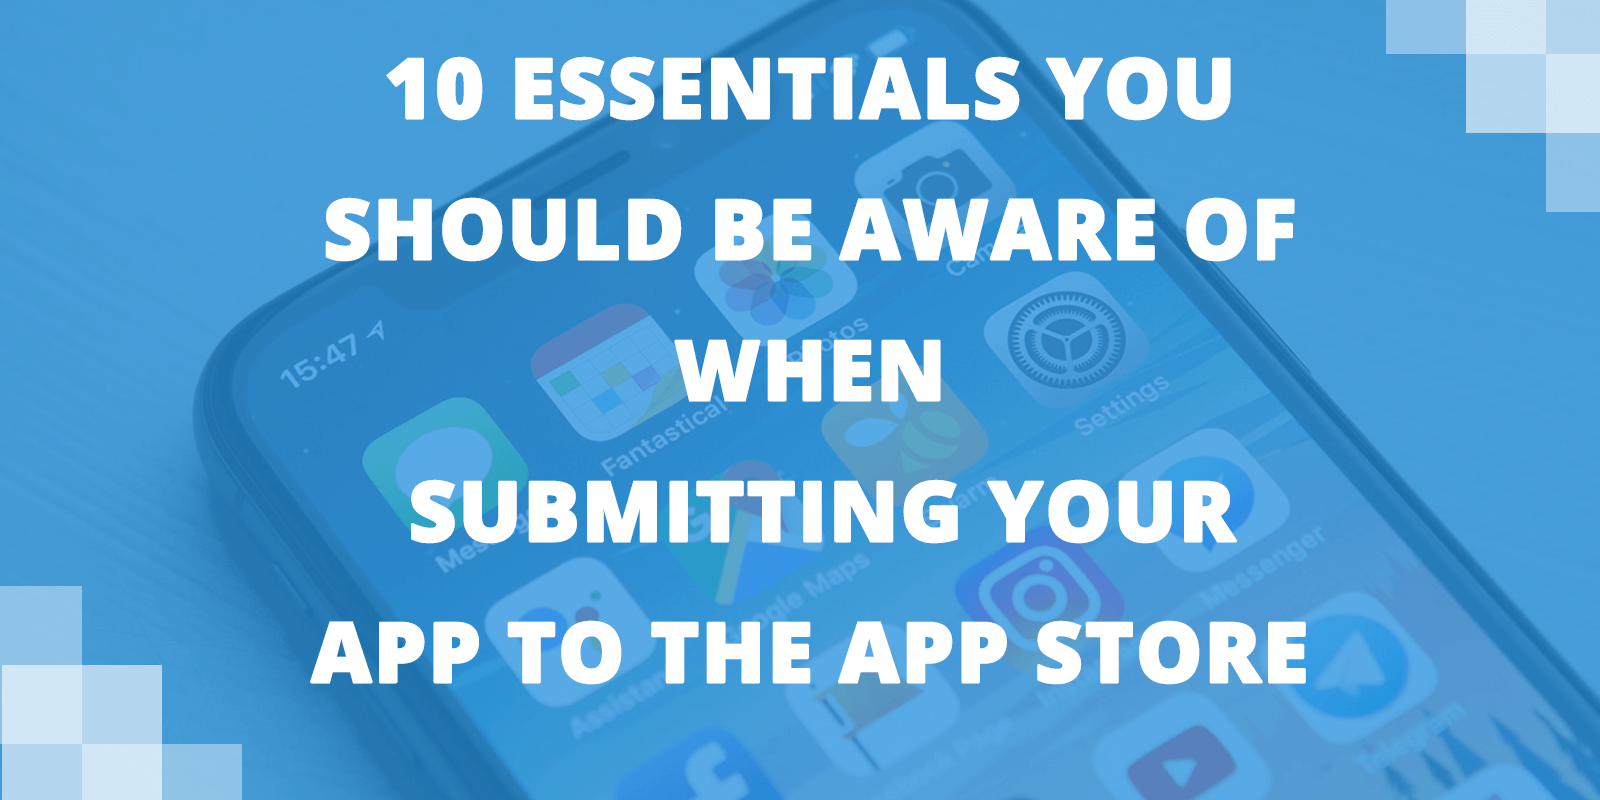 10 Essentials you should be aware of when submitting your App to the App Store